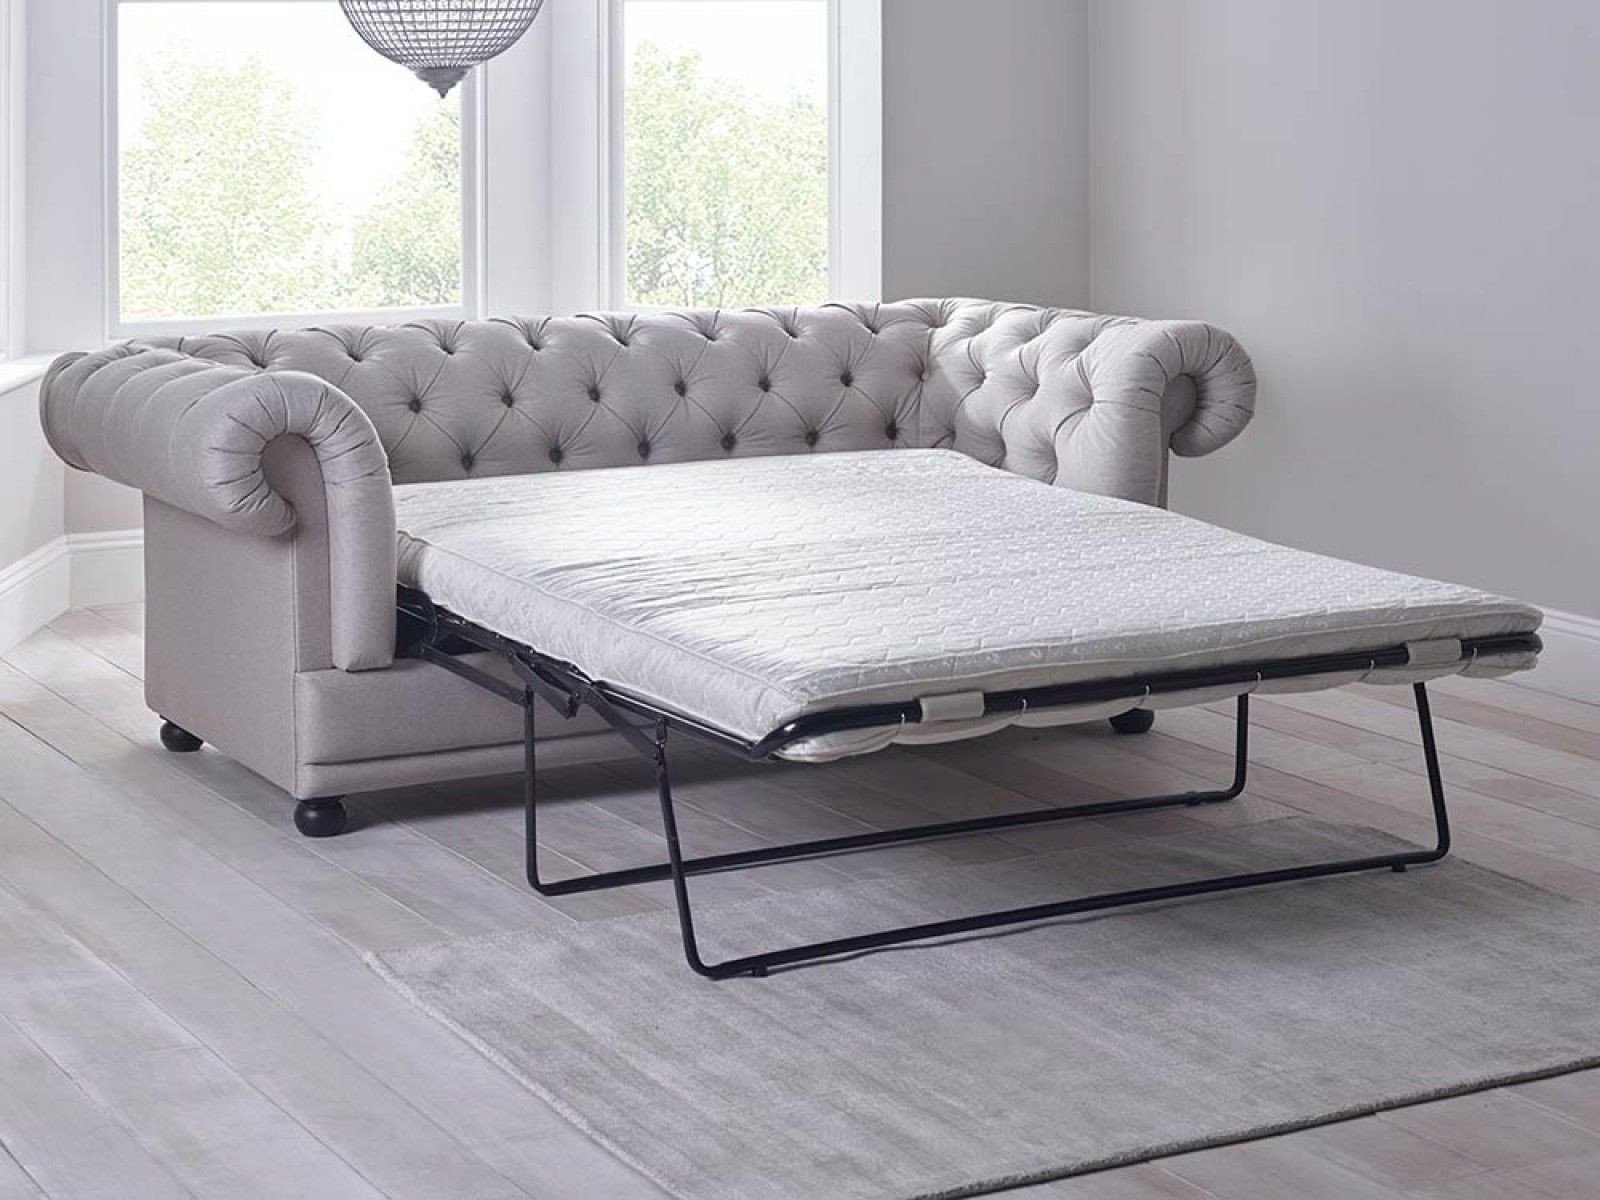 Sofa Bed for Bedroom Fresh Cara Double sofa Bed In Grey A Chesterfield by Day and